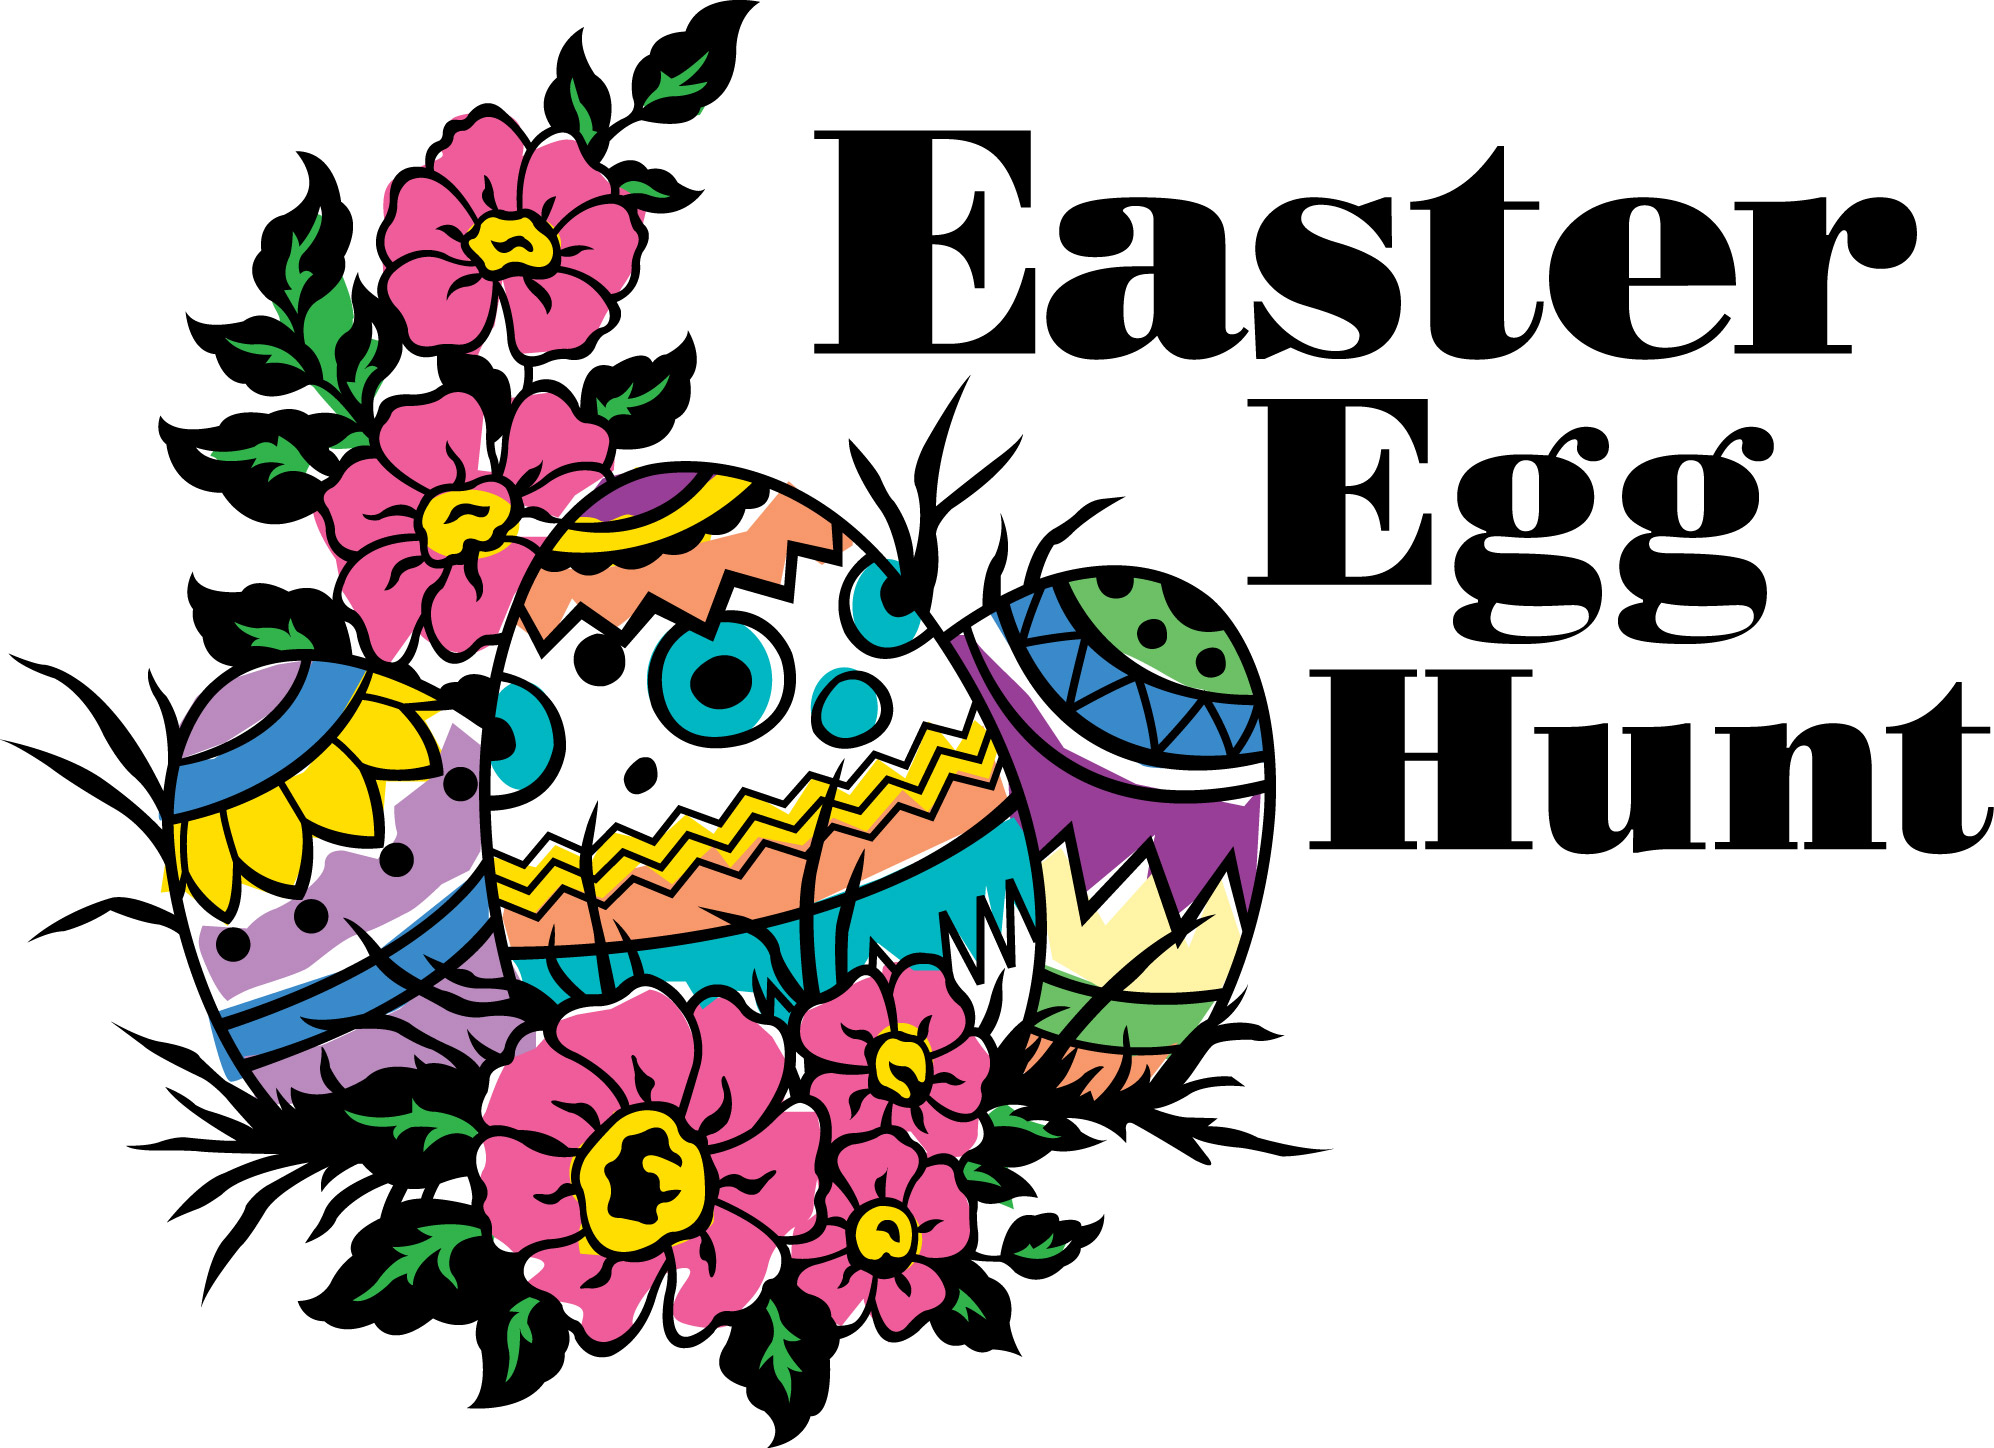 180 Easter Egg Hunt free clipart.